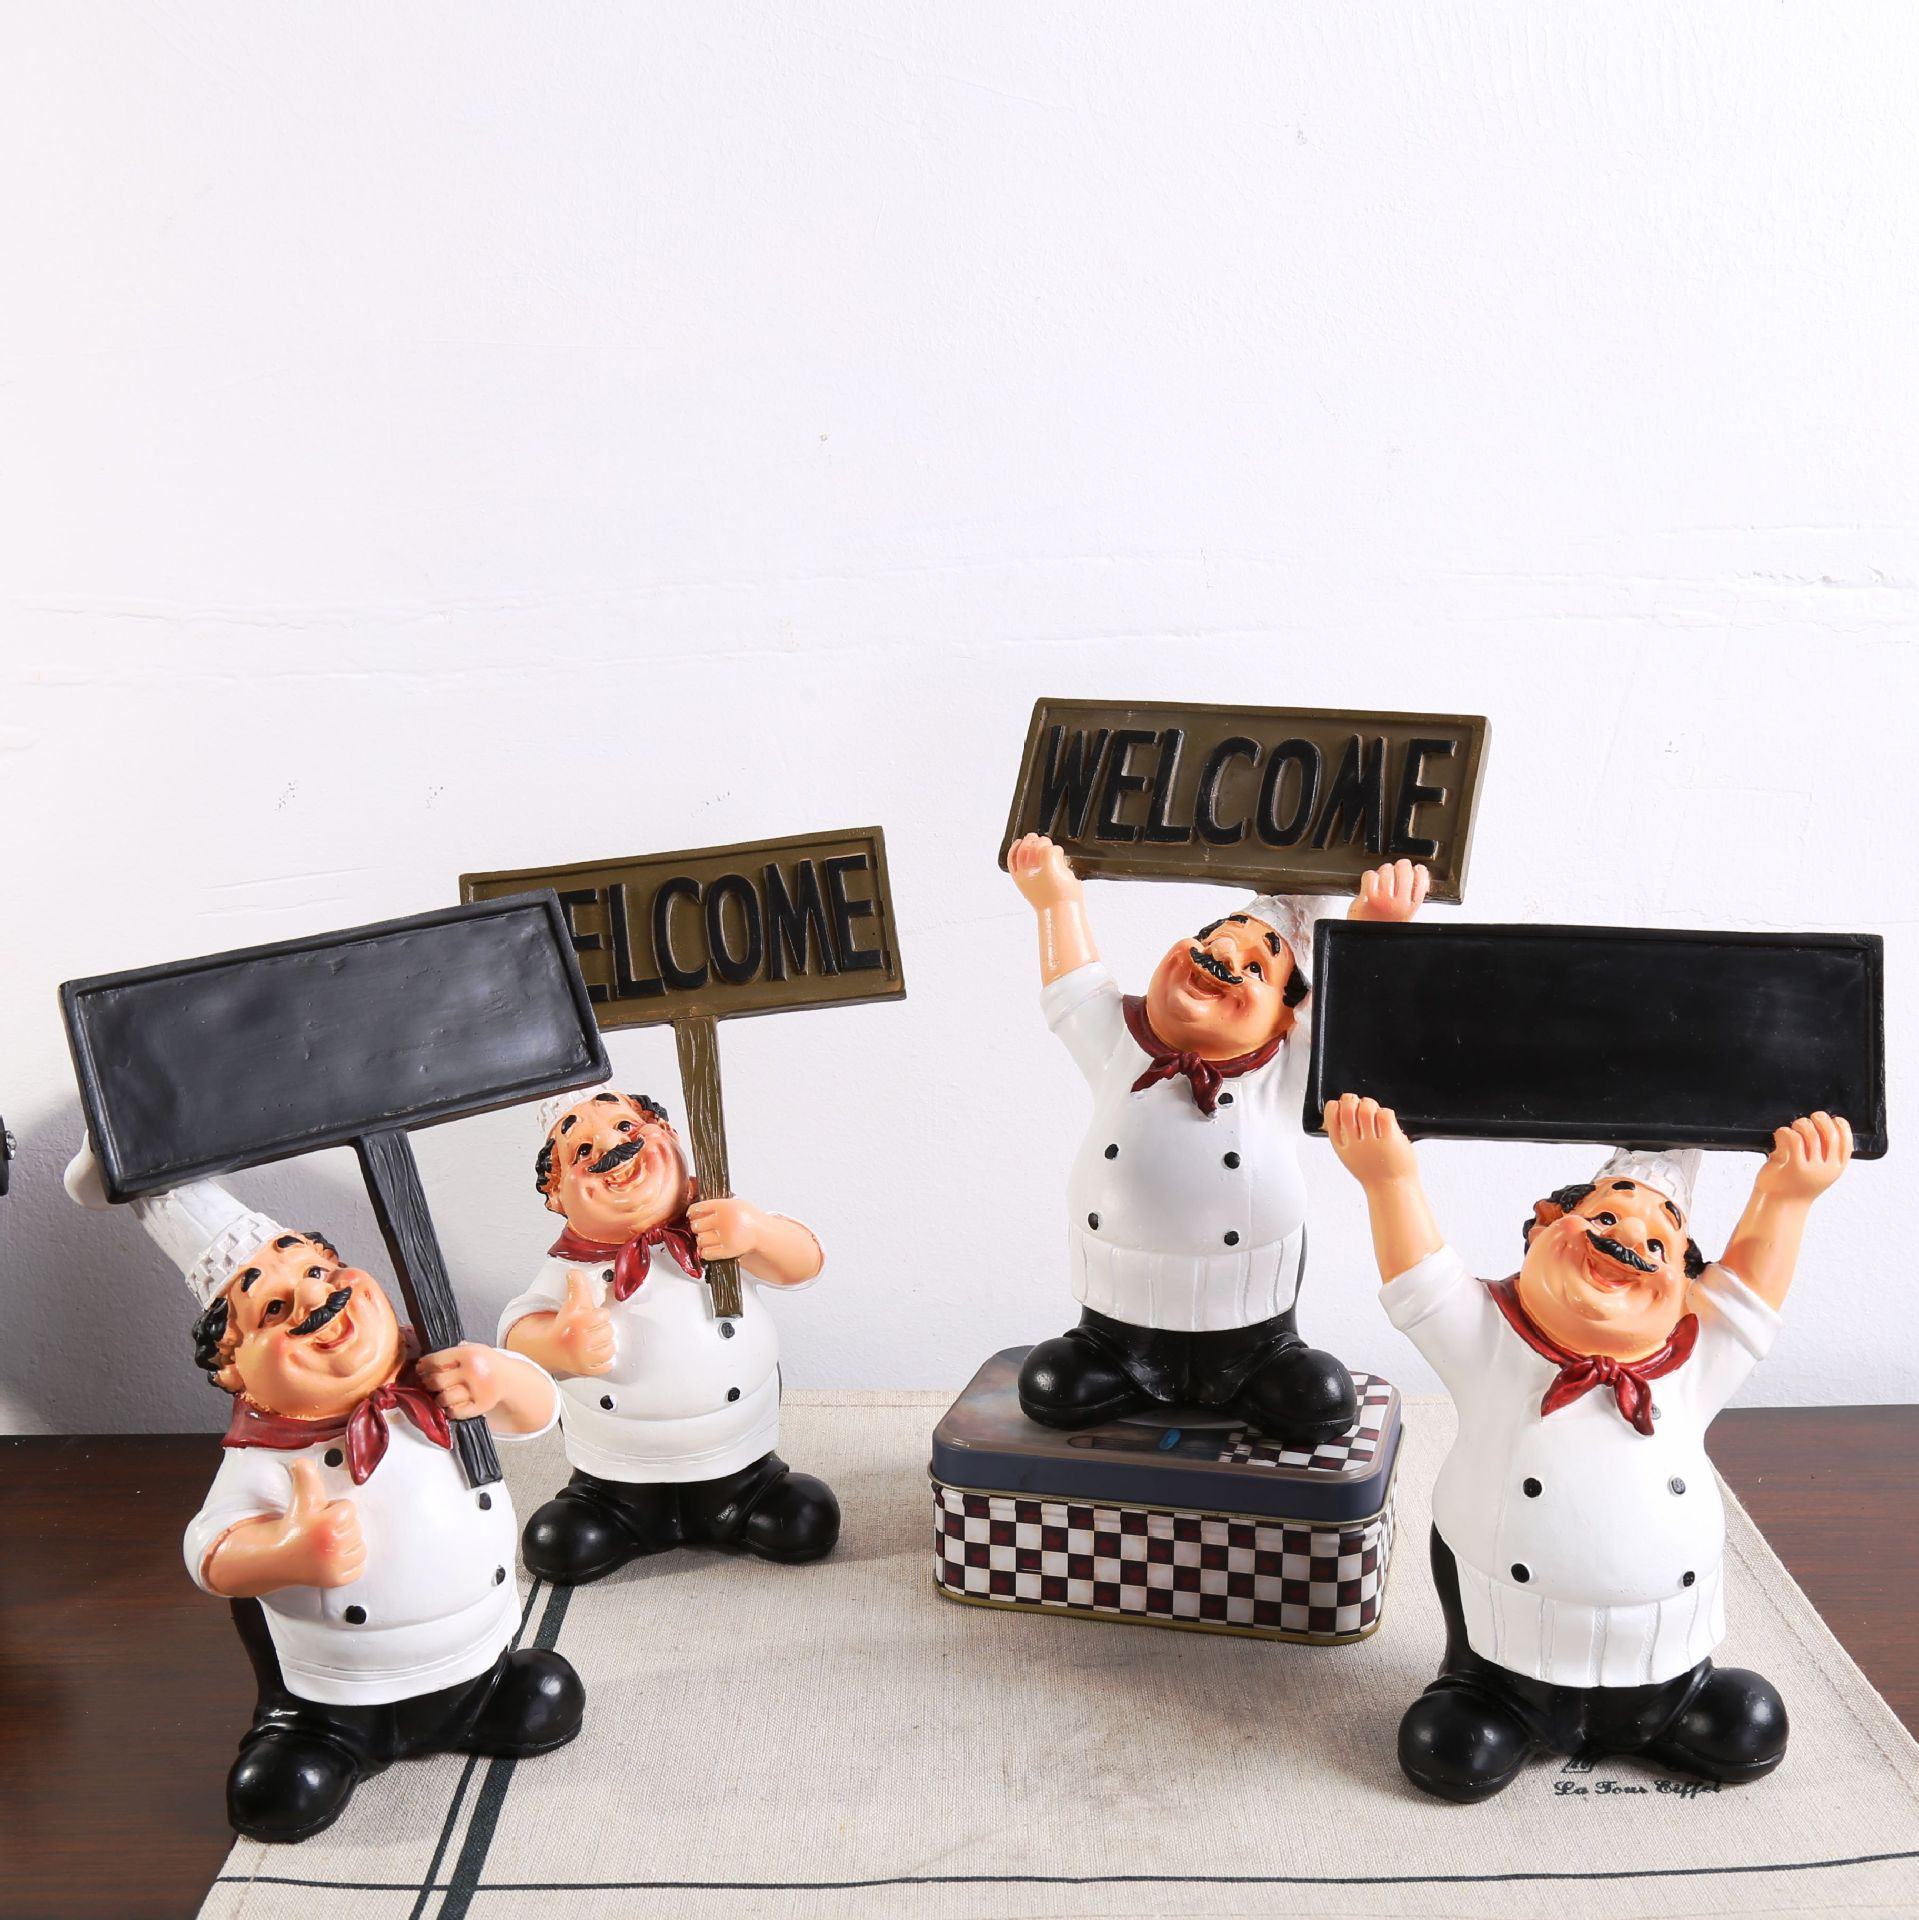 Cartoon Chef Figurine with Welcome Sign for Cafeterias and Restaurant